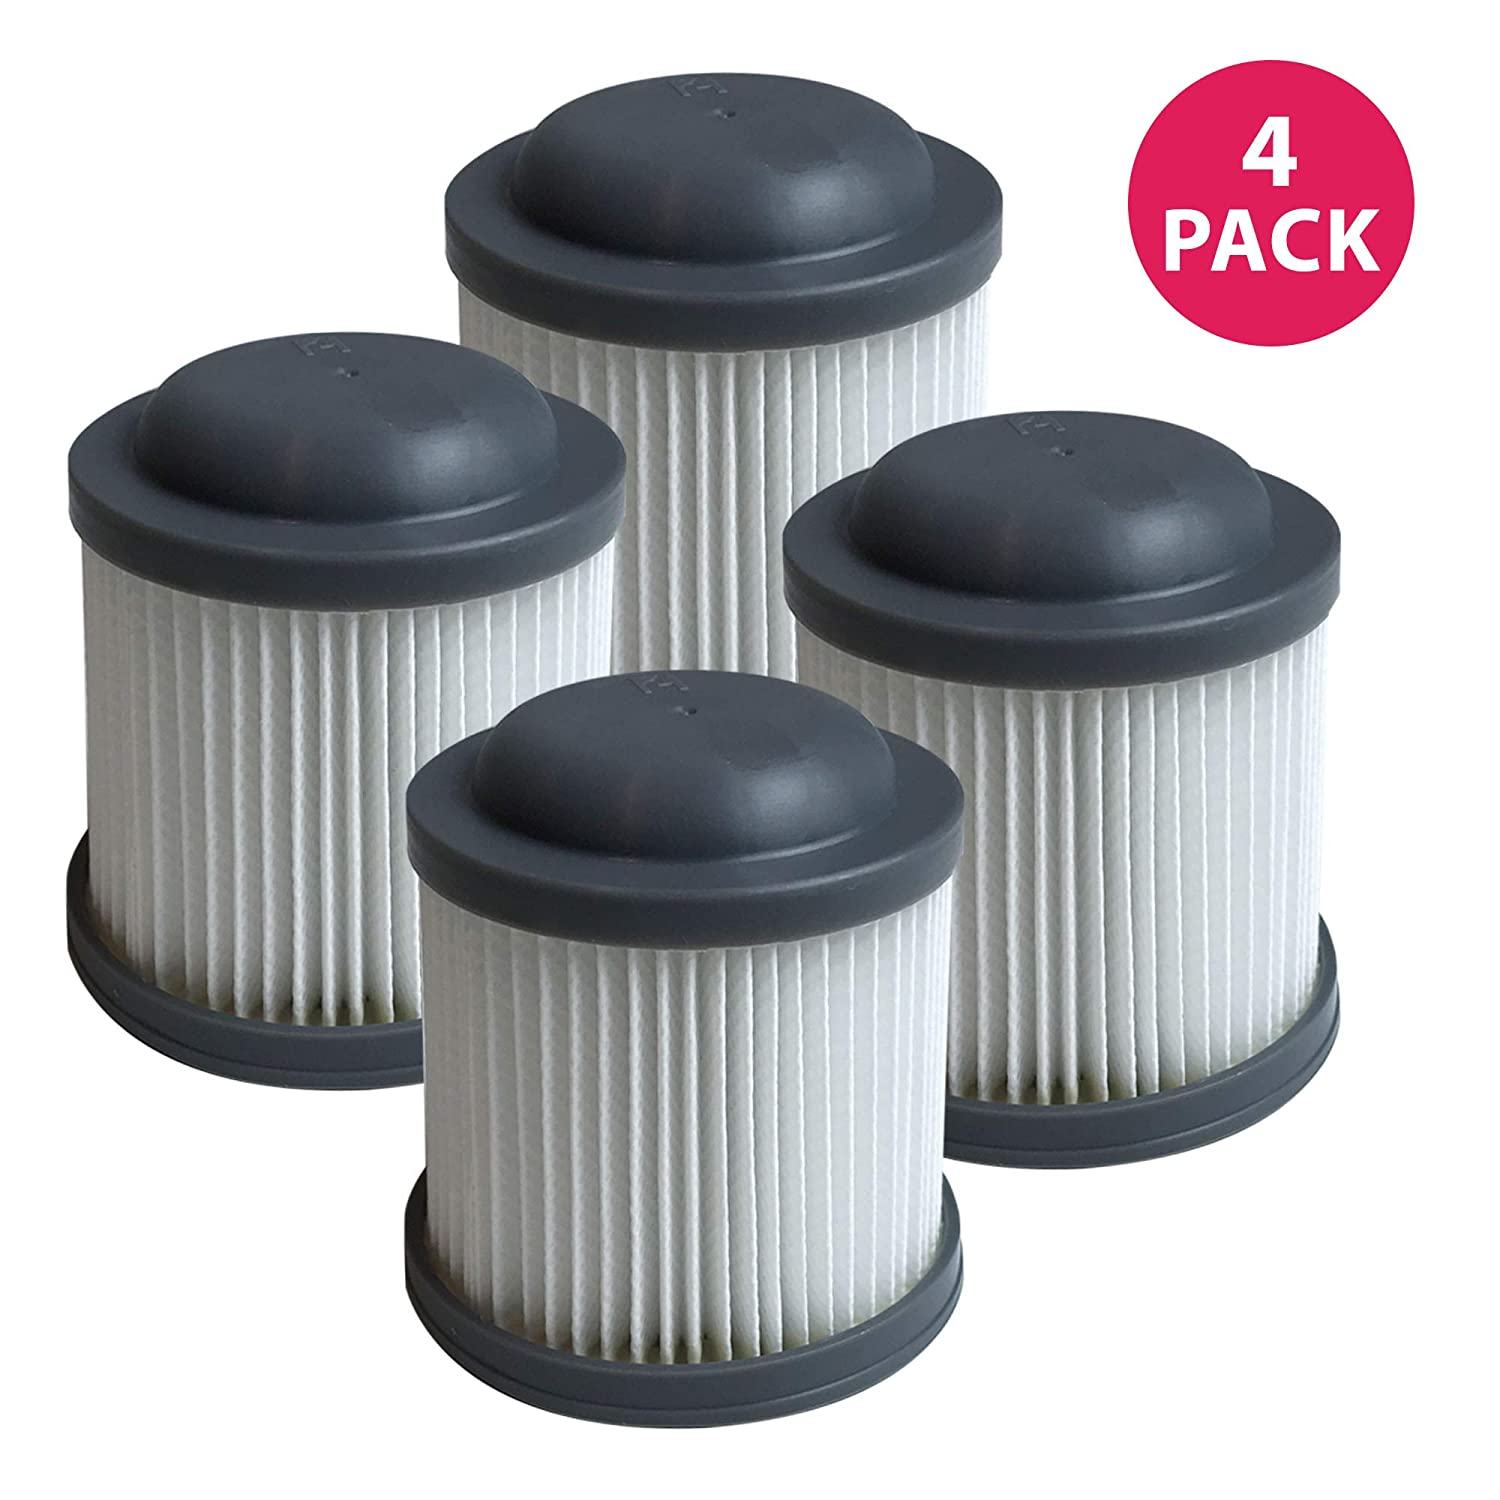 Think Crucial Replacement Vacuum Filters Compatible with Black and Decker Vacuums, Washable and Reusable Filter Part - Parts VF100, VF100H - Fits ...